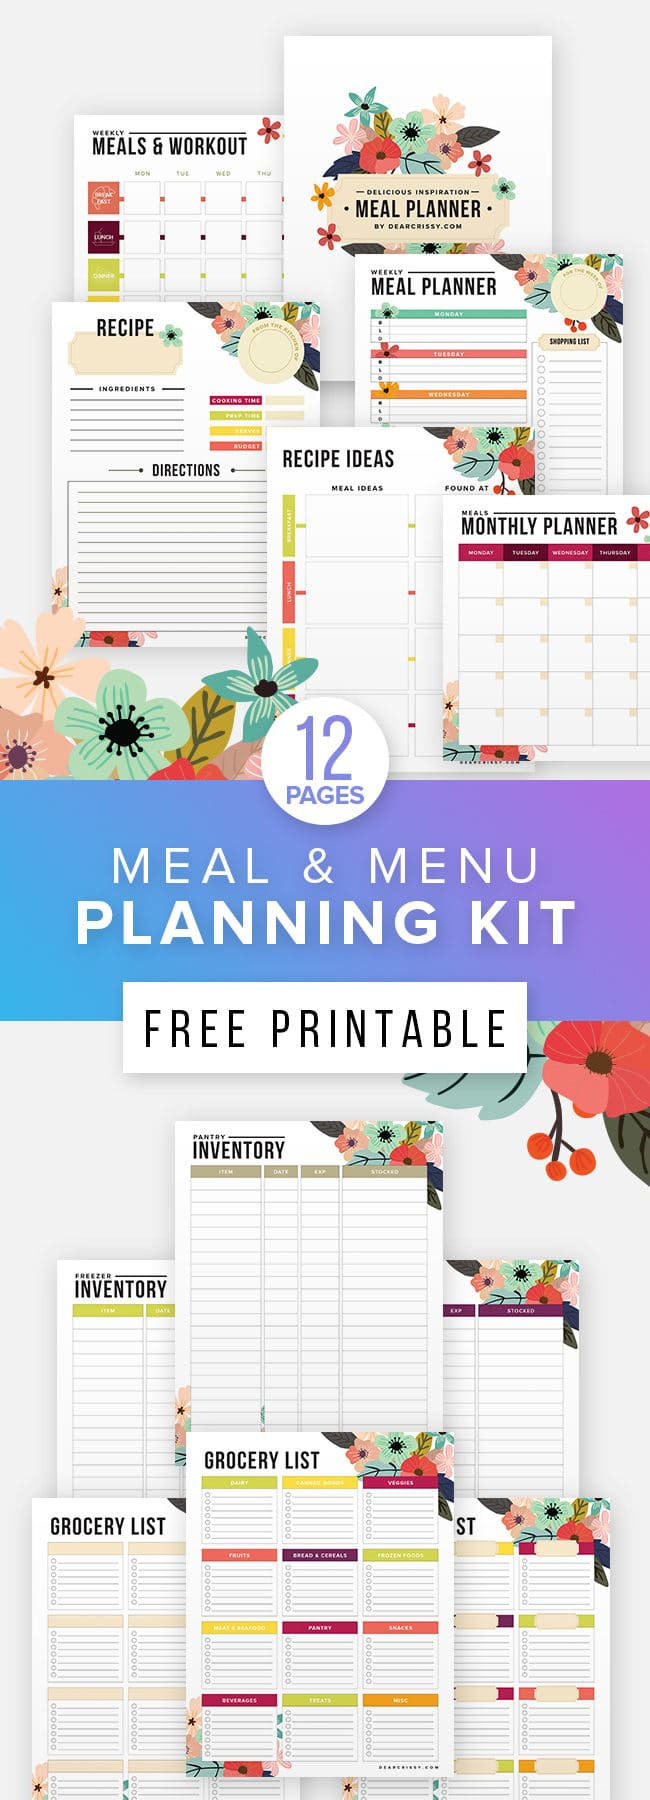 free printable meal fitness planner